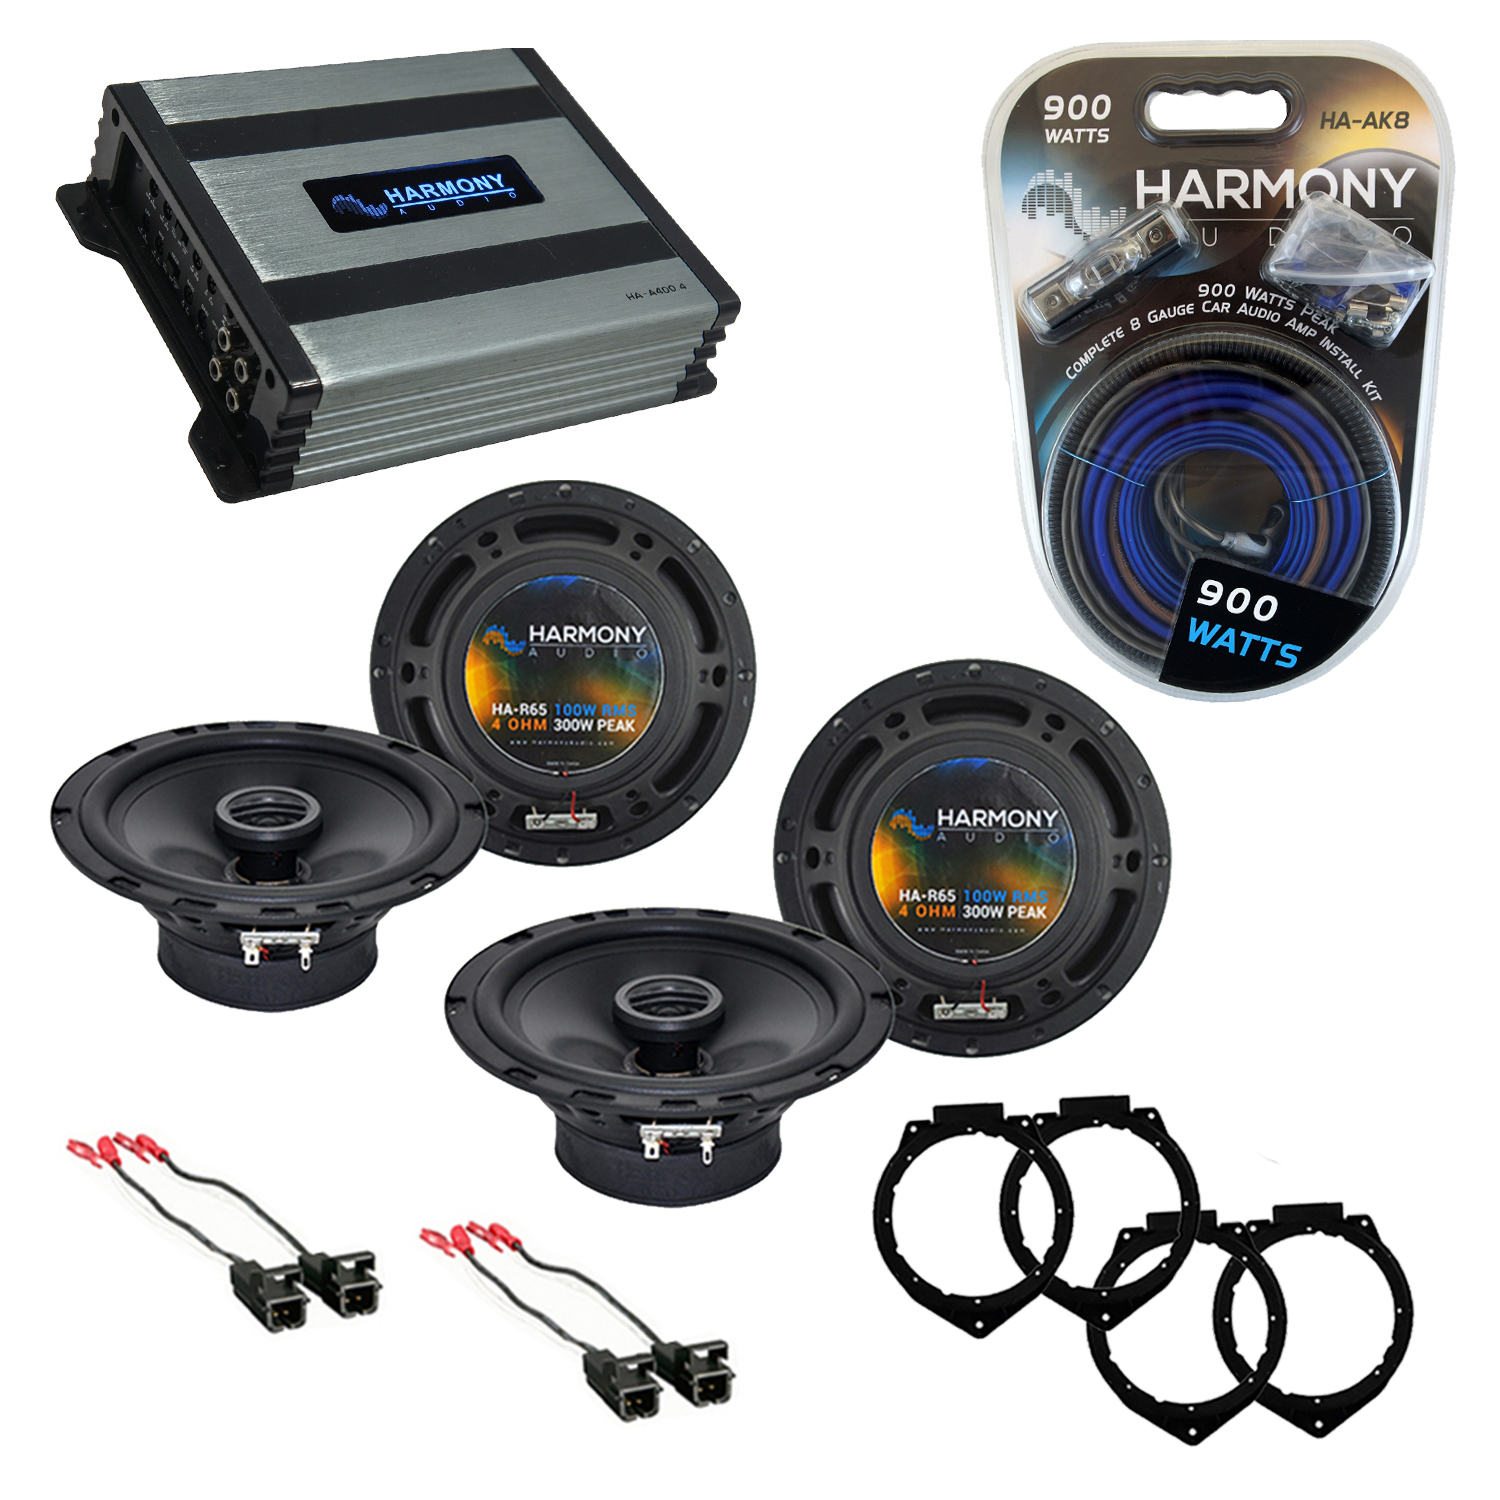 Compatible with Pontiac G5 2007-2010 Factory Speaker Replacement Harmony (2) R65 & Harmony HA-A400.4 Amp